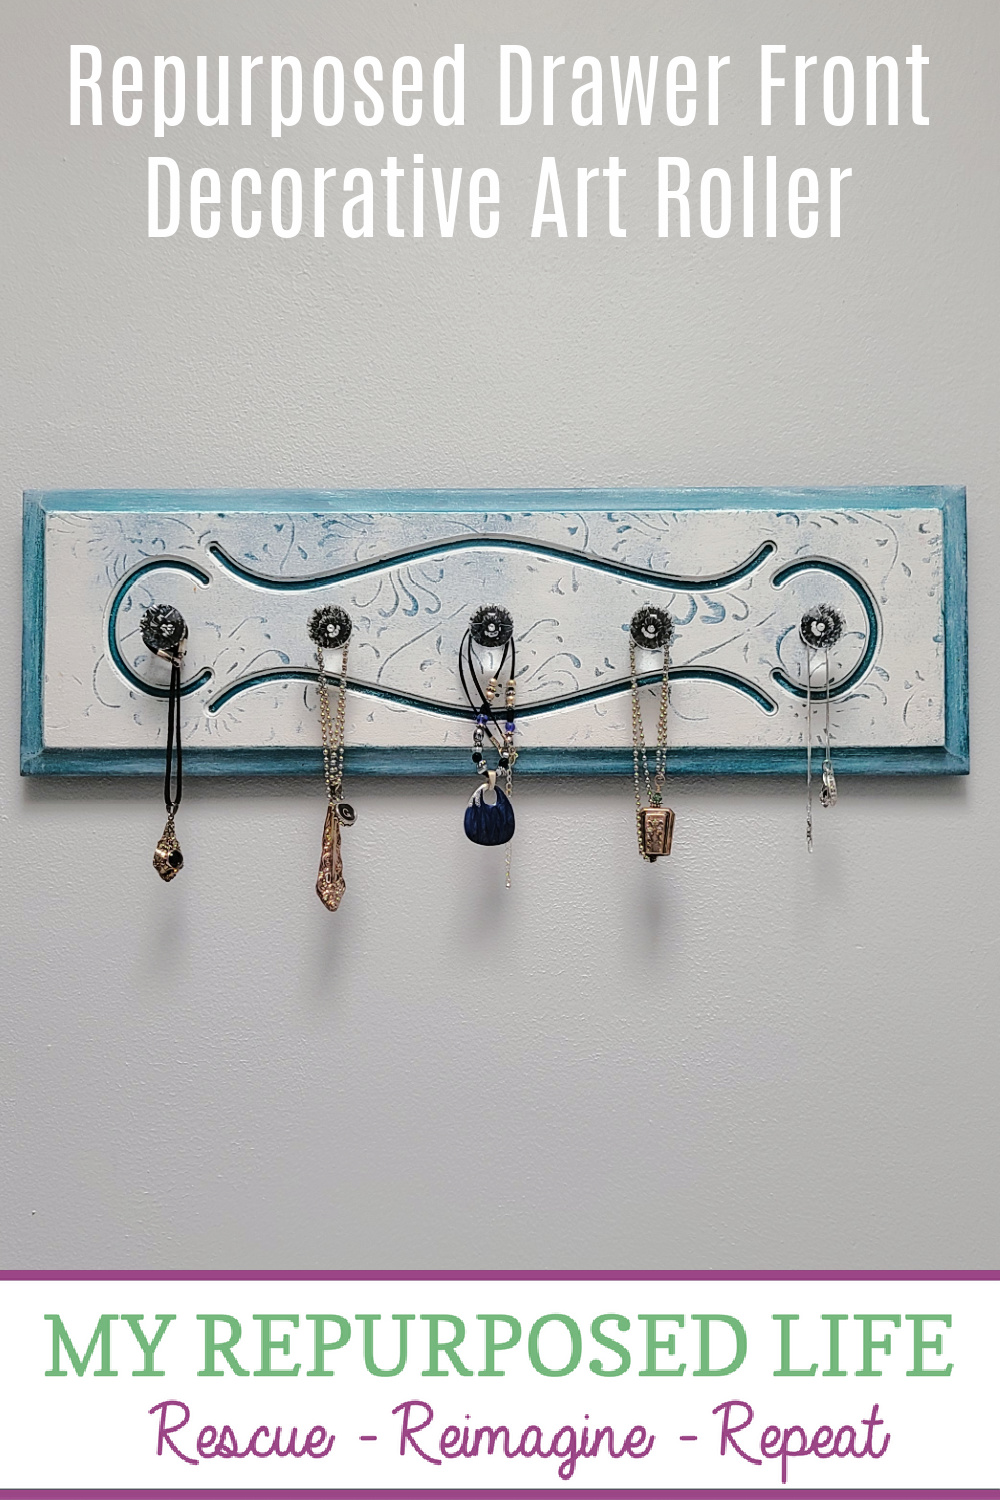 How to make a wooden hanging necklace organizer using a repurposed drawer front and new glass knobs. Hang jewelry, scarves, hats and more. #MyRepurposedLife #repurposed #drawer #jewelry #organizer #diy via @repurposedlife